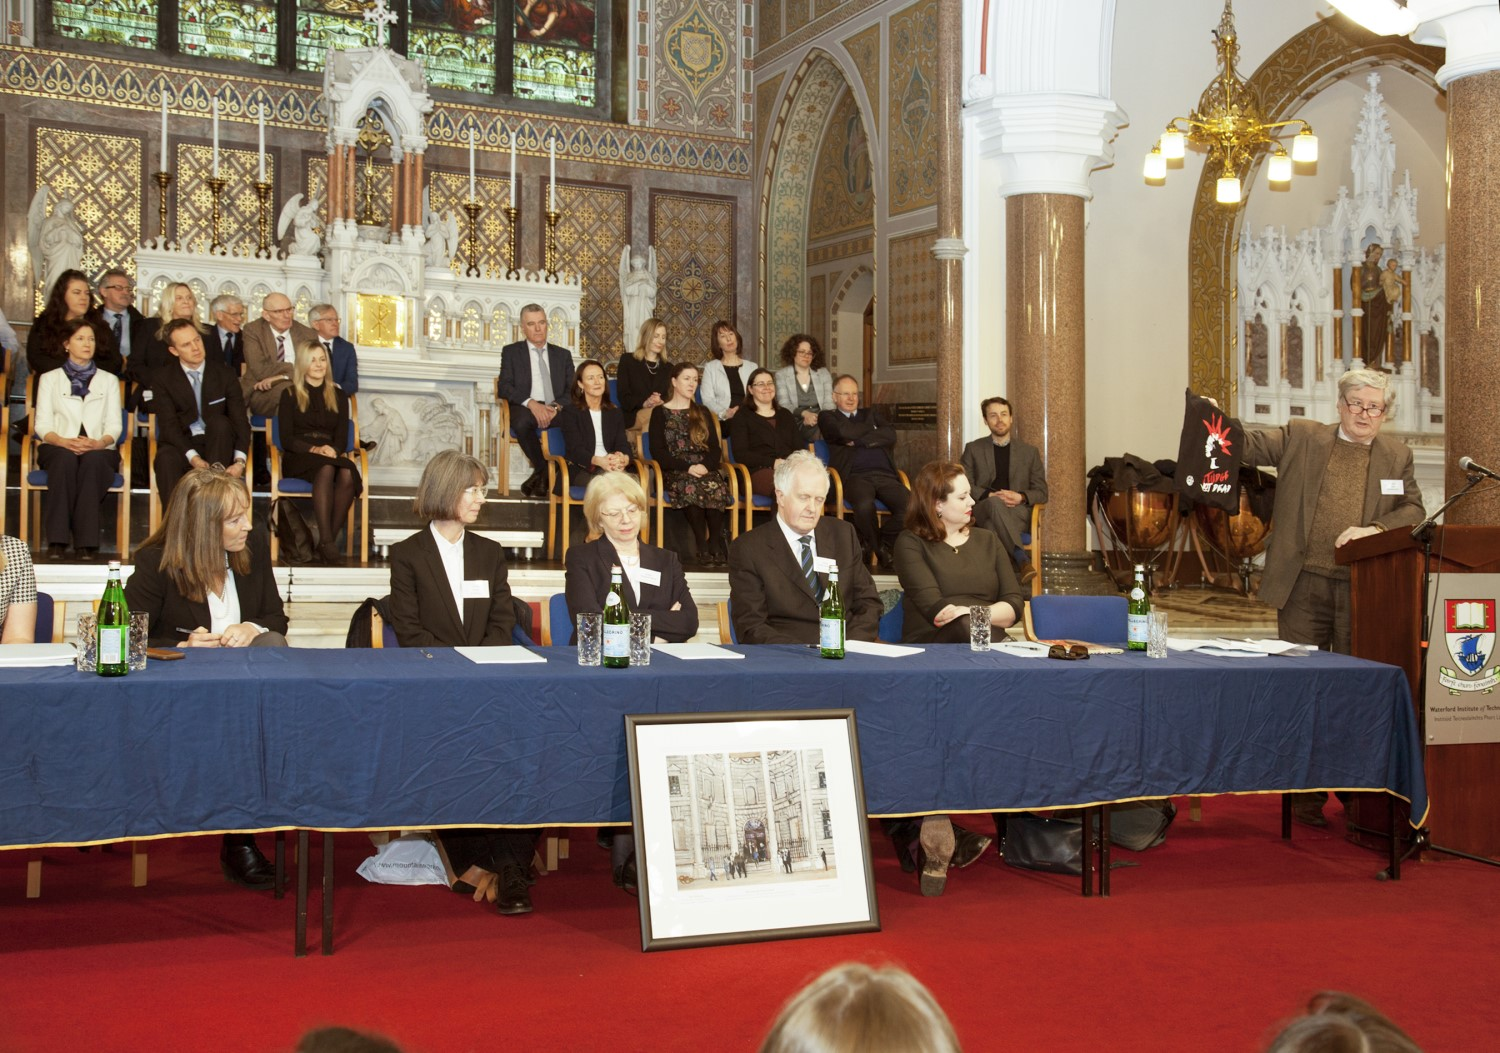 The event was organised in conjunction with the Office of the Chief Justice to mark the historic occasion of the Supreme Court's first sitting in Waterford